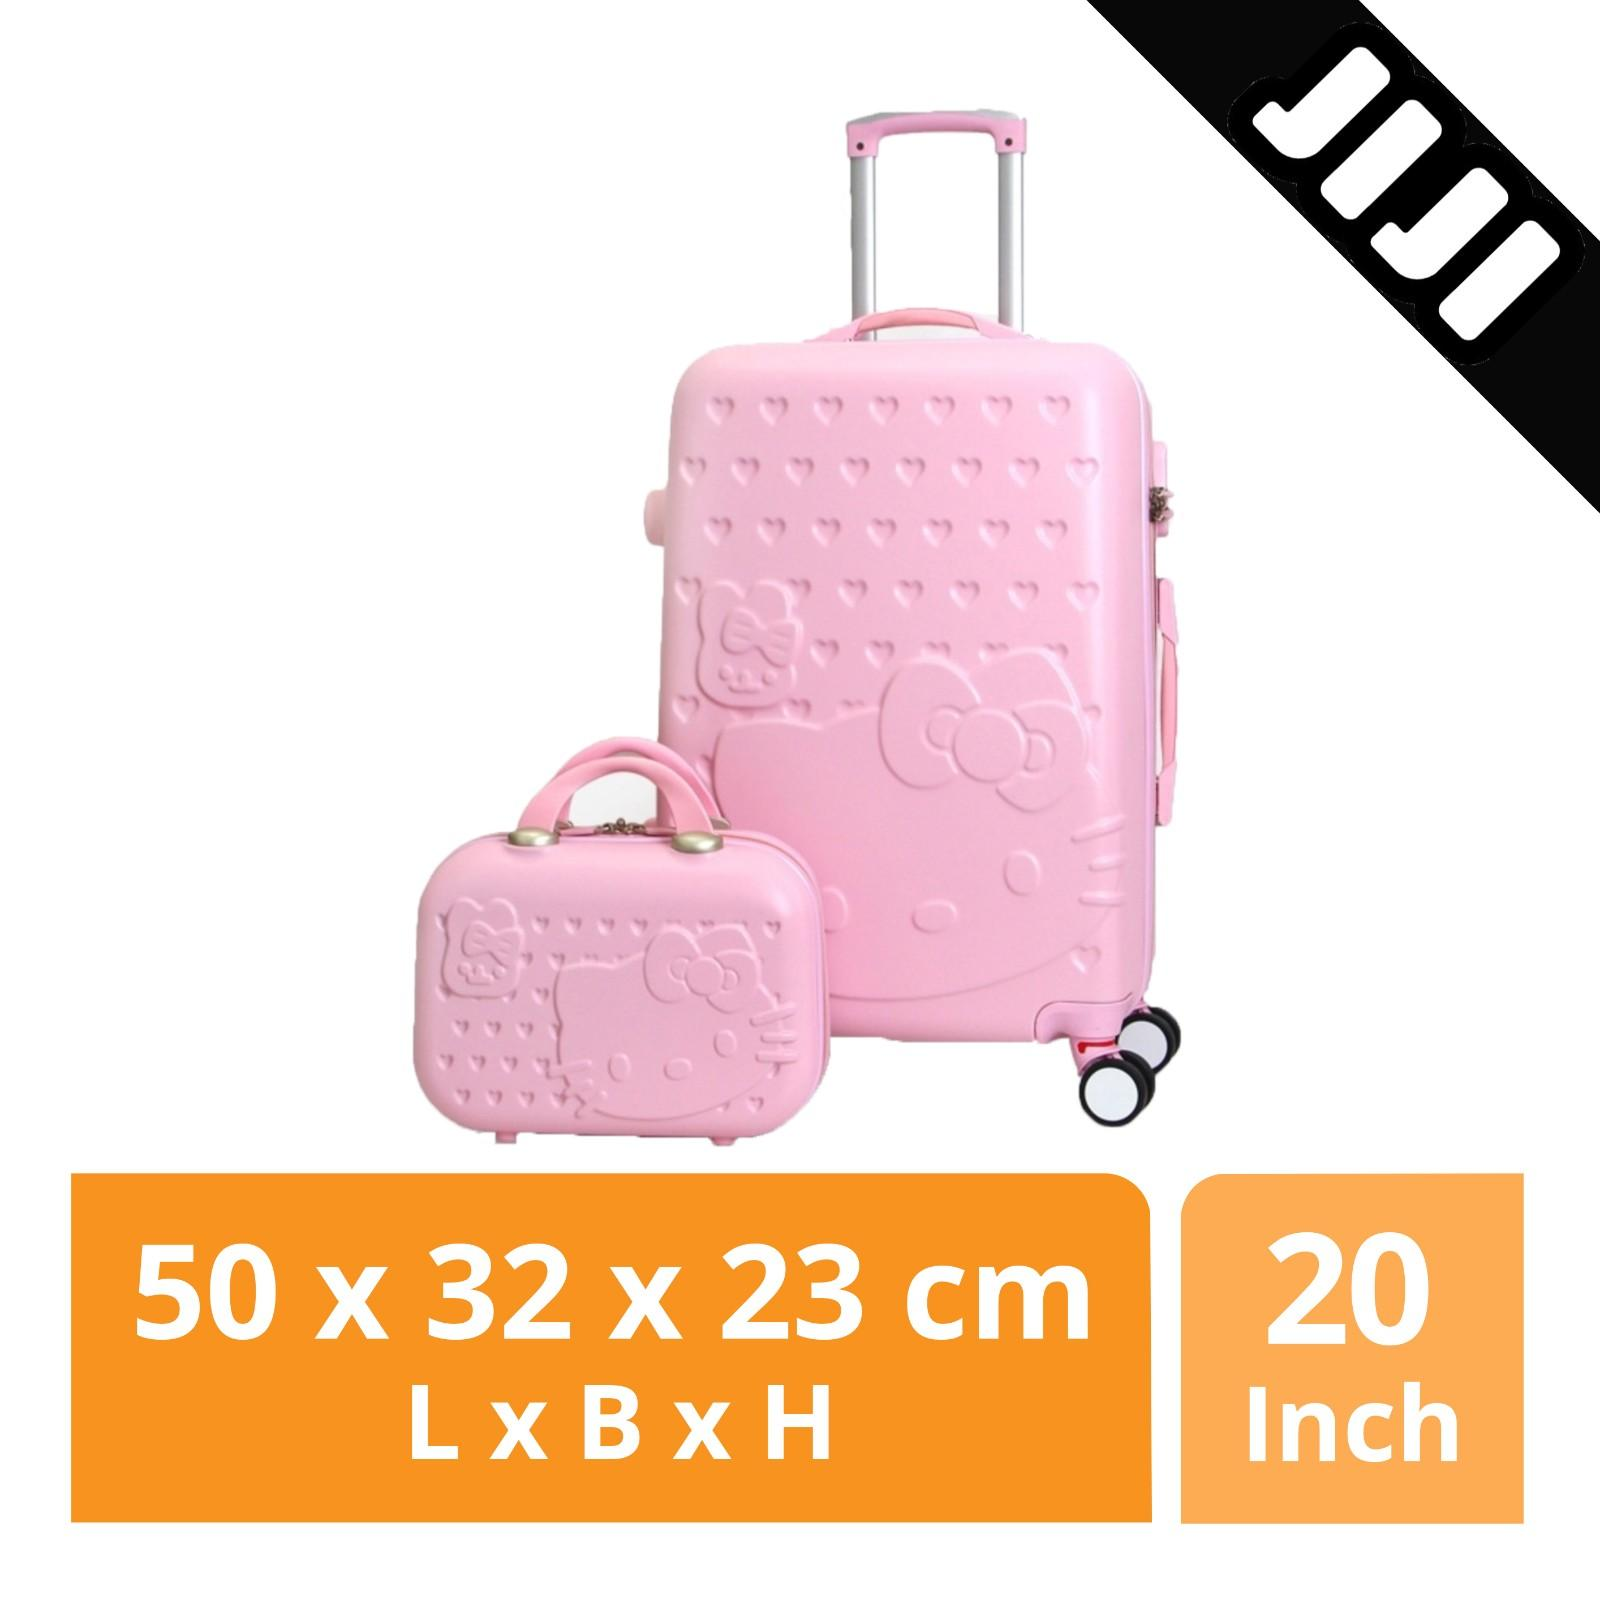 a904914b99cc JIJI Hello Kitty Luggage with Suitcase 20 24 inch - Travel Bags   Refined